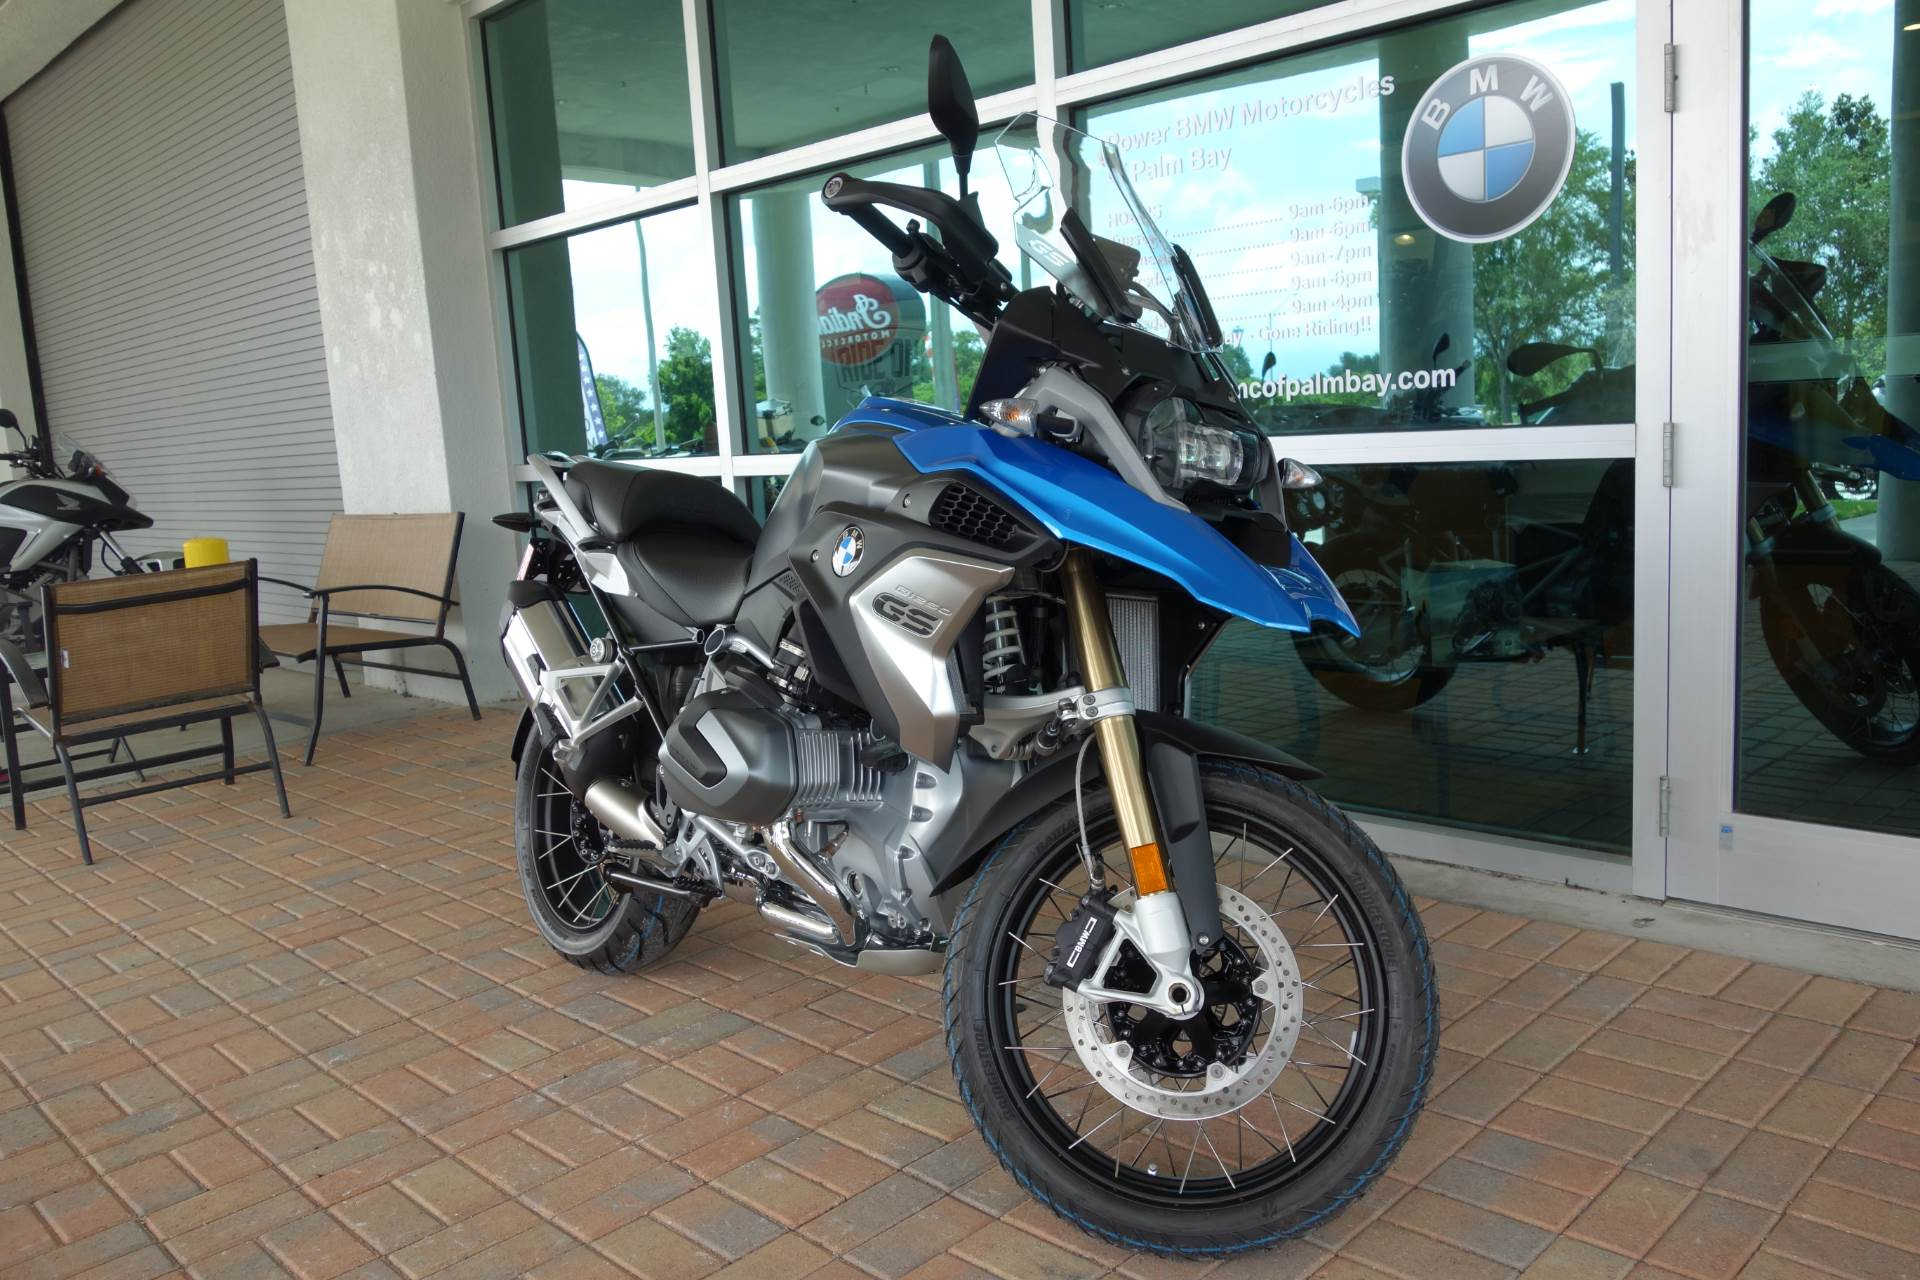 2019 BMW R 1250 GS in Palm Bay, Florida - Photo 11